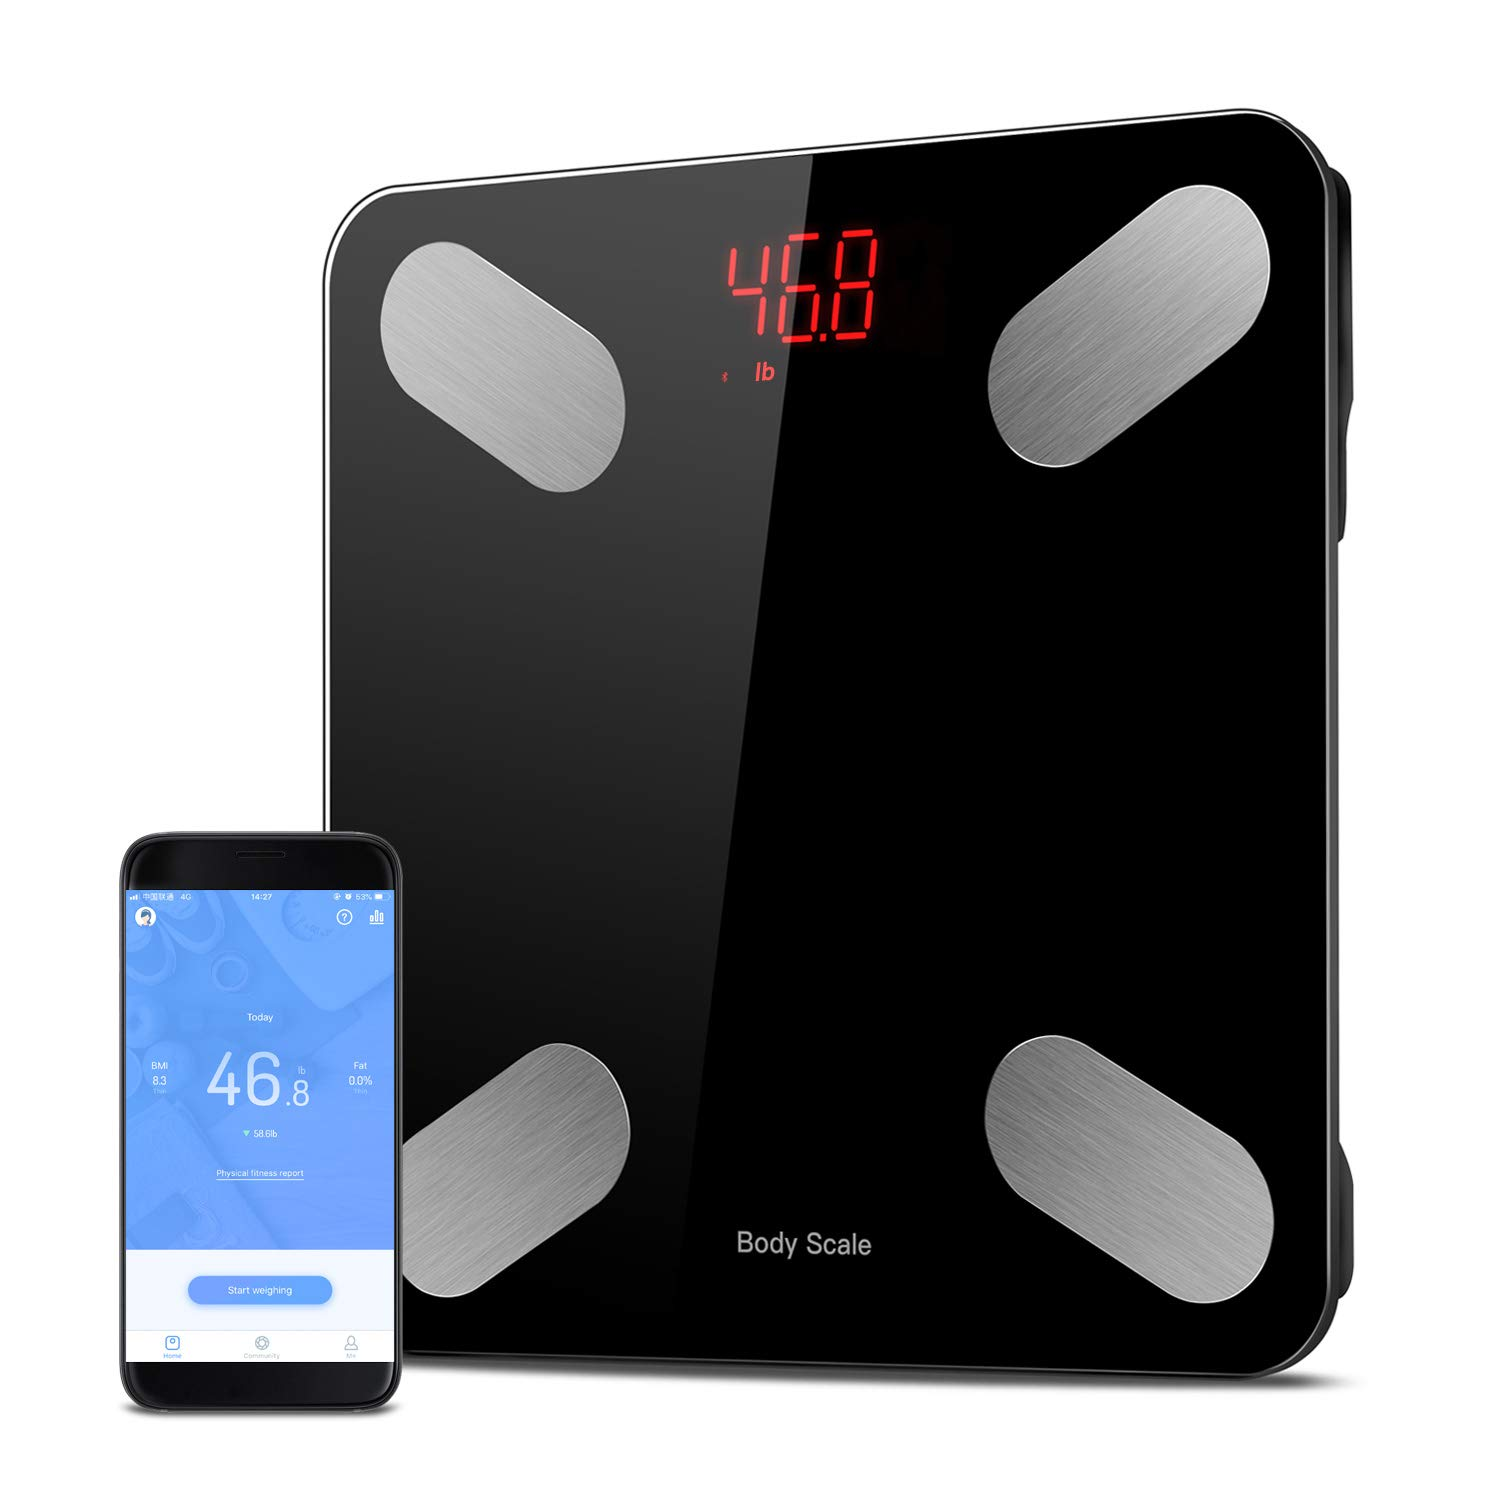 Smart Bluetooth Body Fat Scale - Digital Bathroom Weight Scale APP to Monitor 23 Body Composition,Body Analyzer with Smartphone App for Body Weight, Fat, Water, BMI, BMR, Muscle Mass